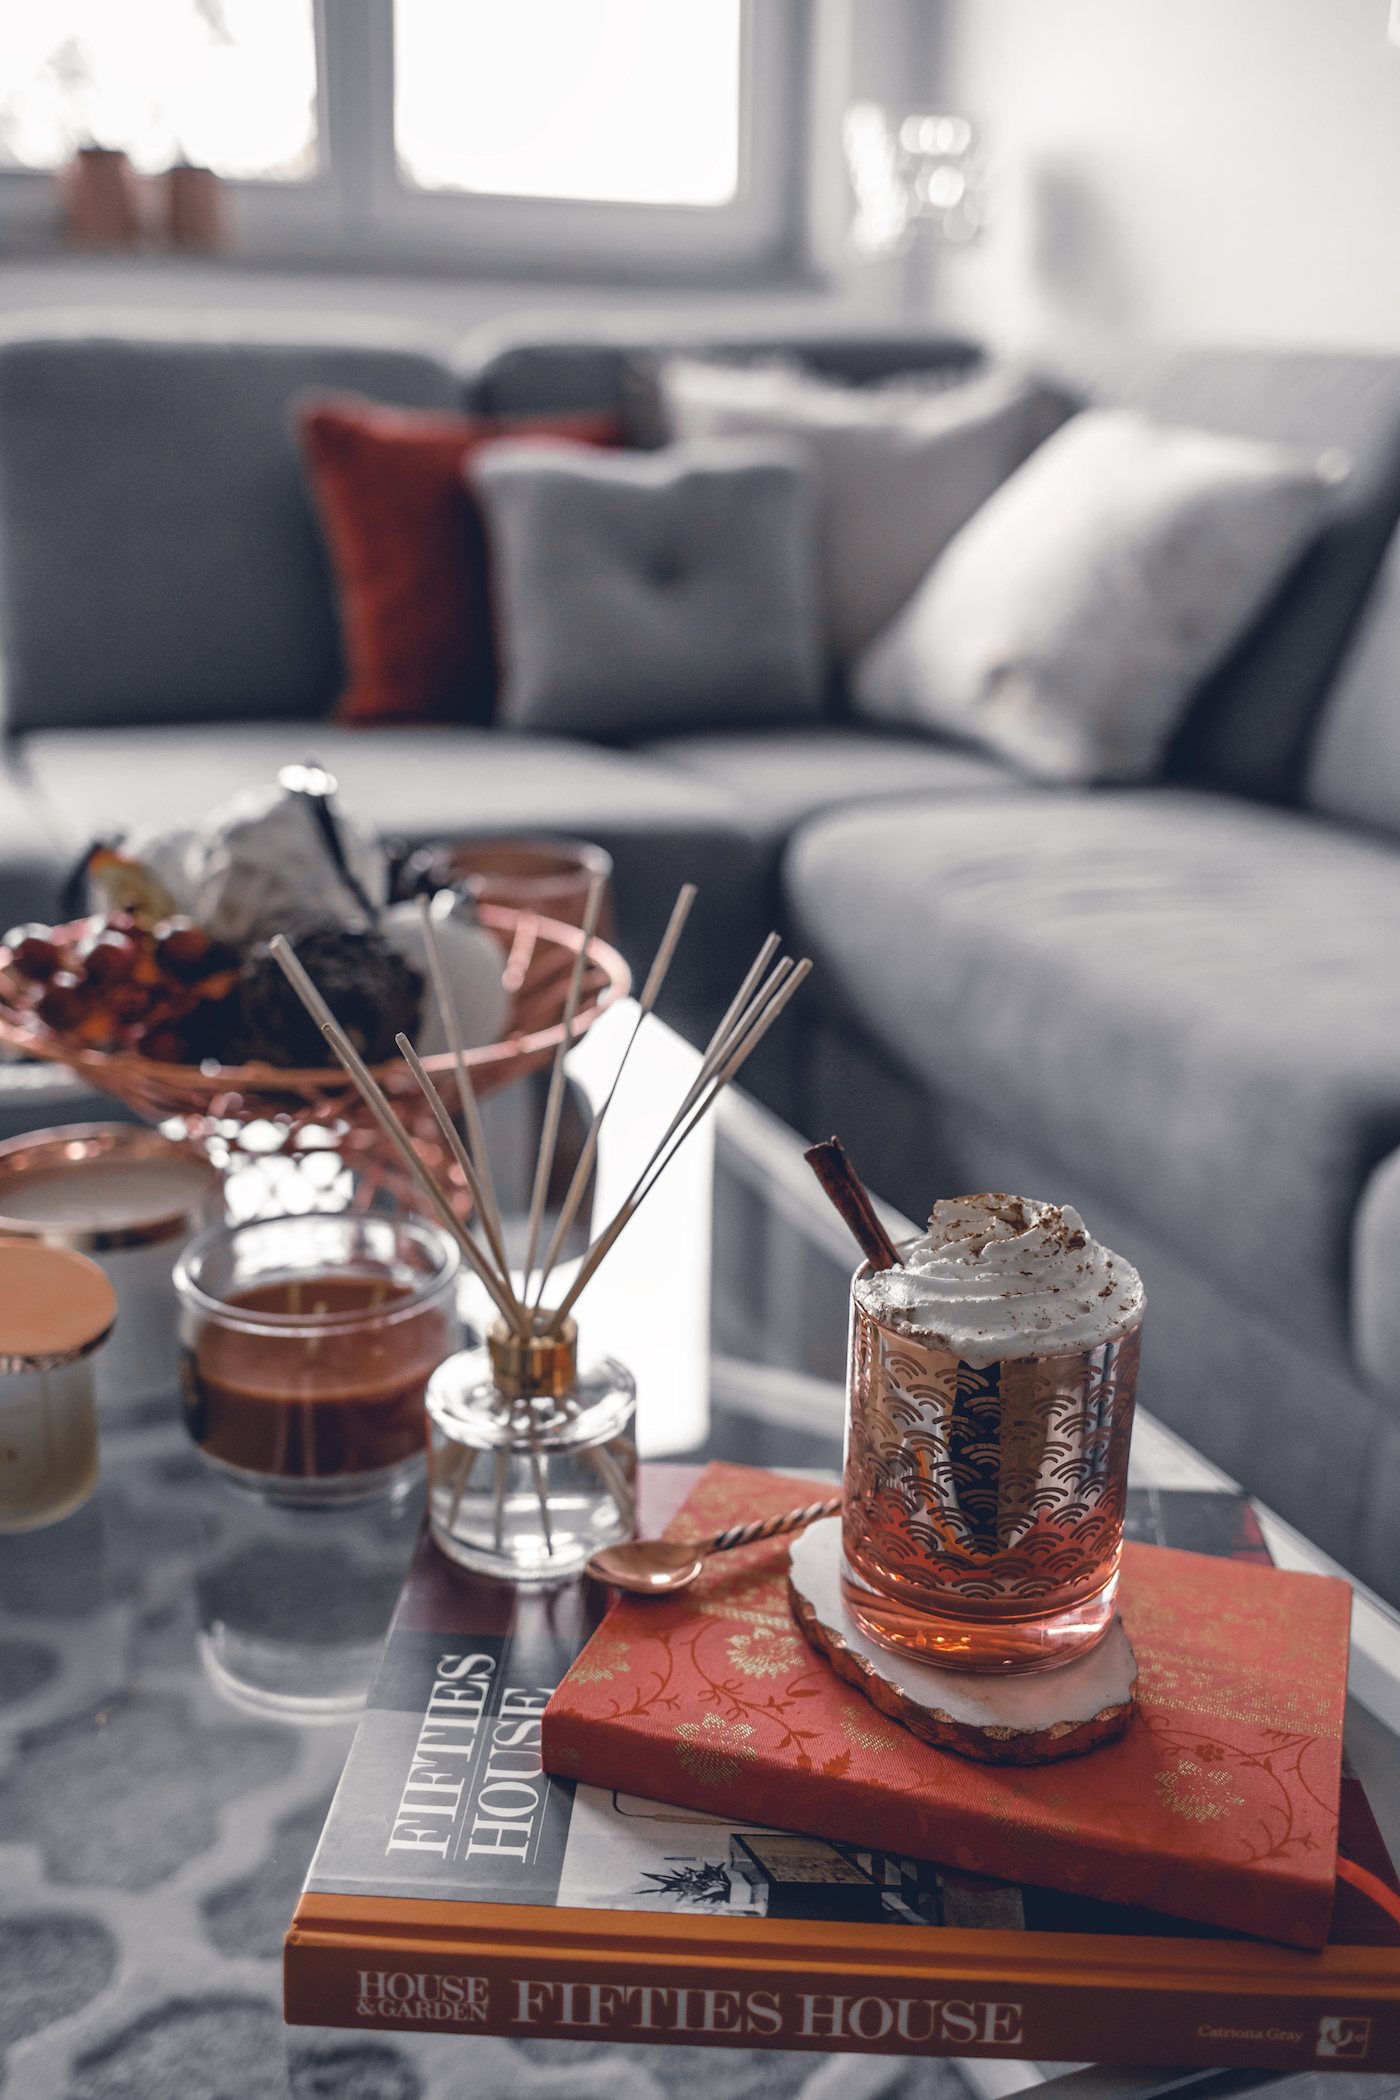 fall decor ideas for the home, 2017, living rooms, simple, autumn, center pieces, interior inspiration | Seen on wantgetrepeat.com